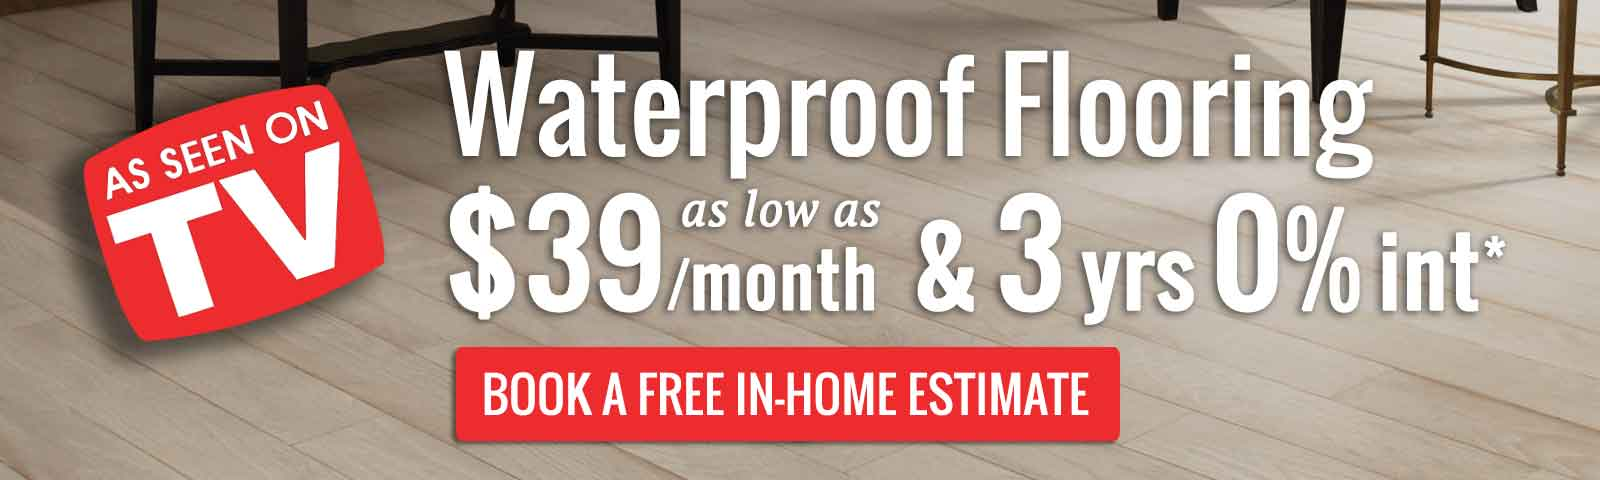 Waterproof flooring Sale - luxury vinyl plank as low as $39 a month